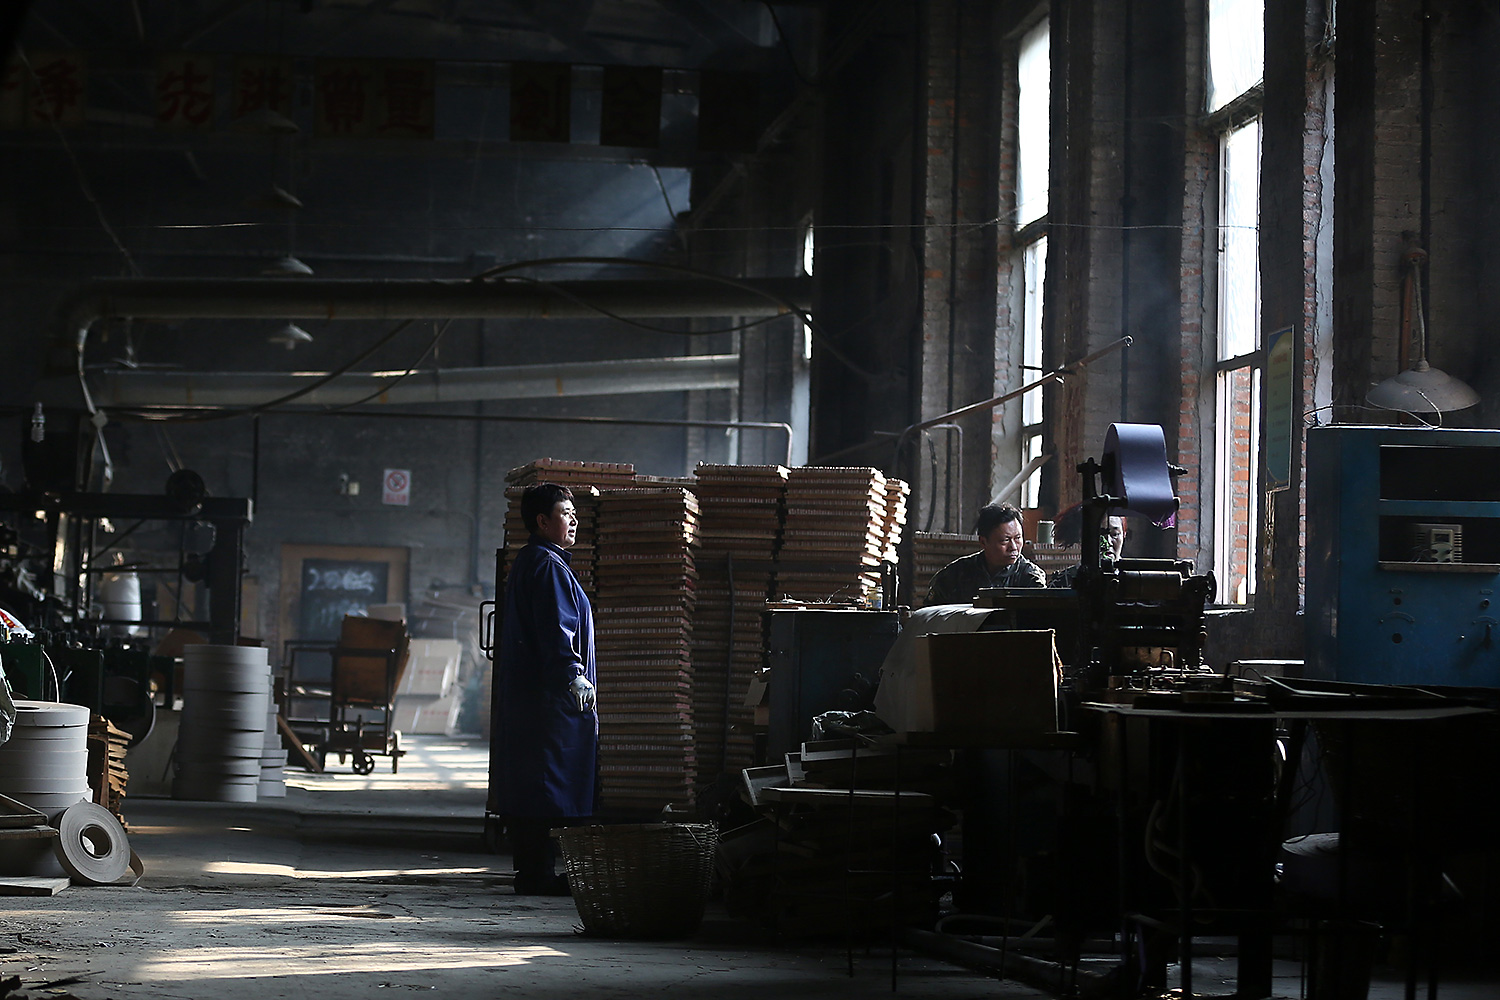 Factory Director Chu Junping, right, works with the old machines. With the factory's heyday long over, Chu says his business relies on old customers to keep it afloat.